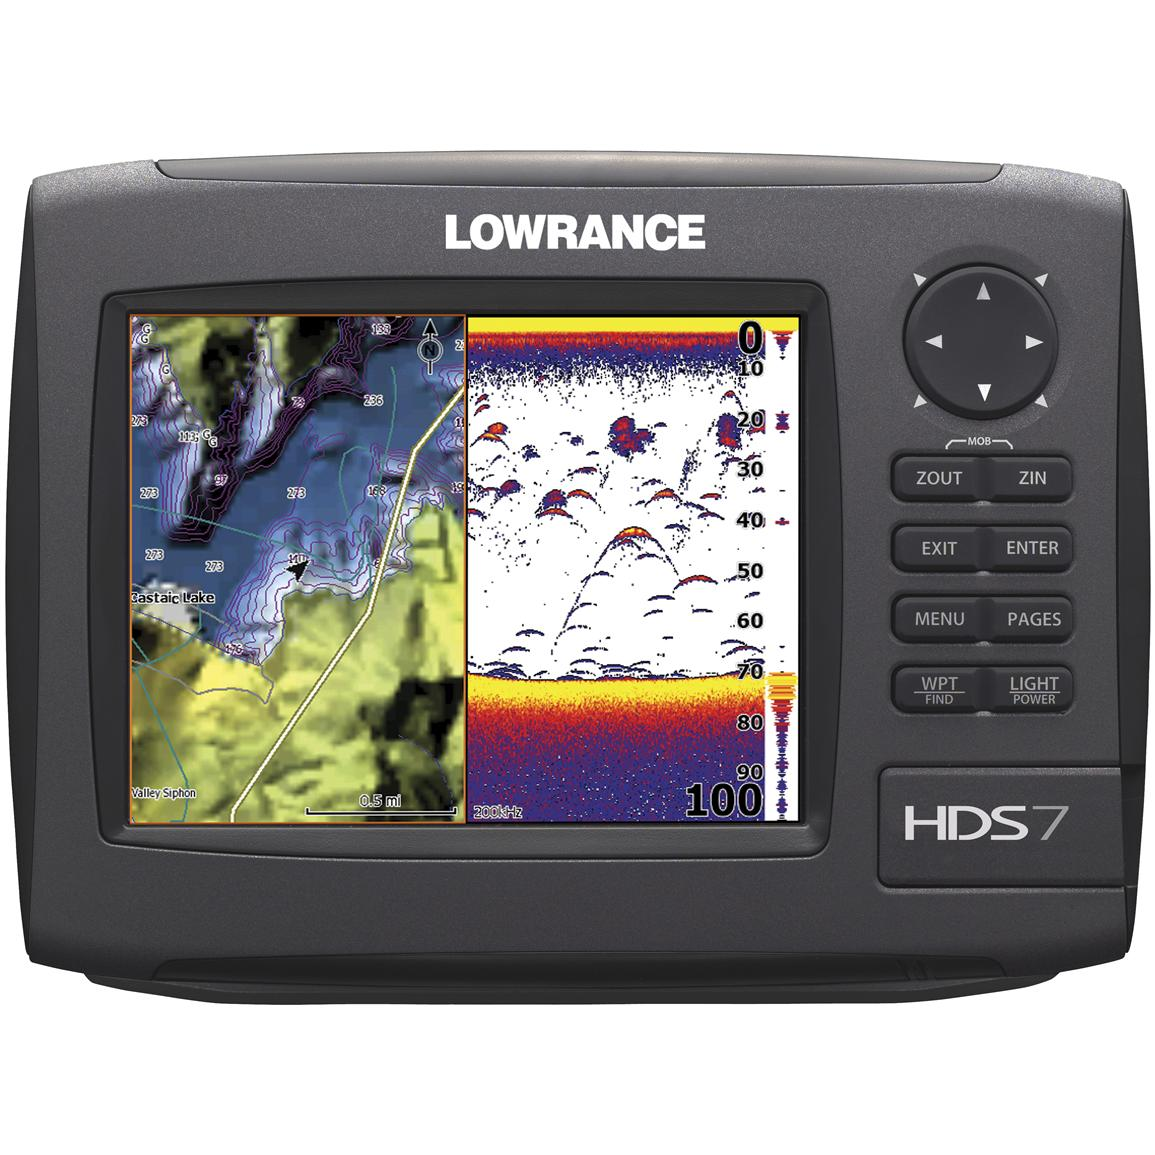 Lowrance® HDS-7 Gen 2 Fishfinder / GPS Chartplotter with Insight USA™ Maps & 50 / 200 kHz Transducer